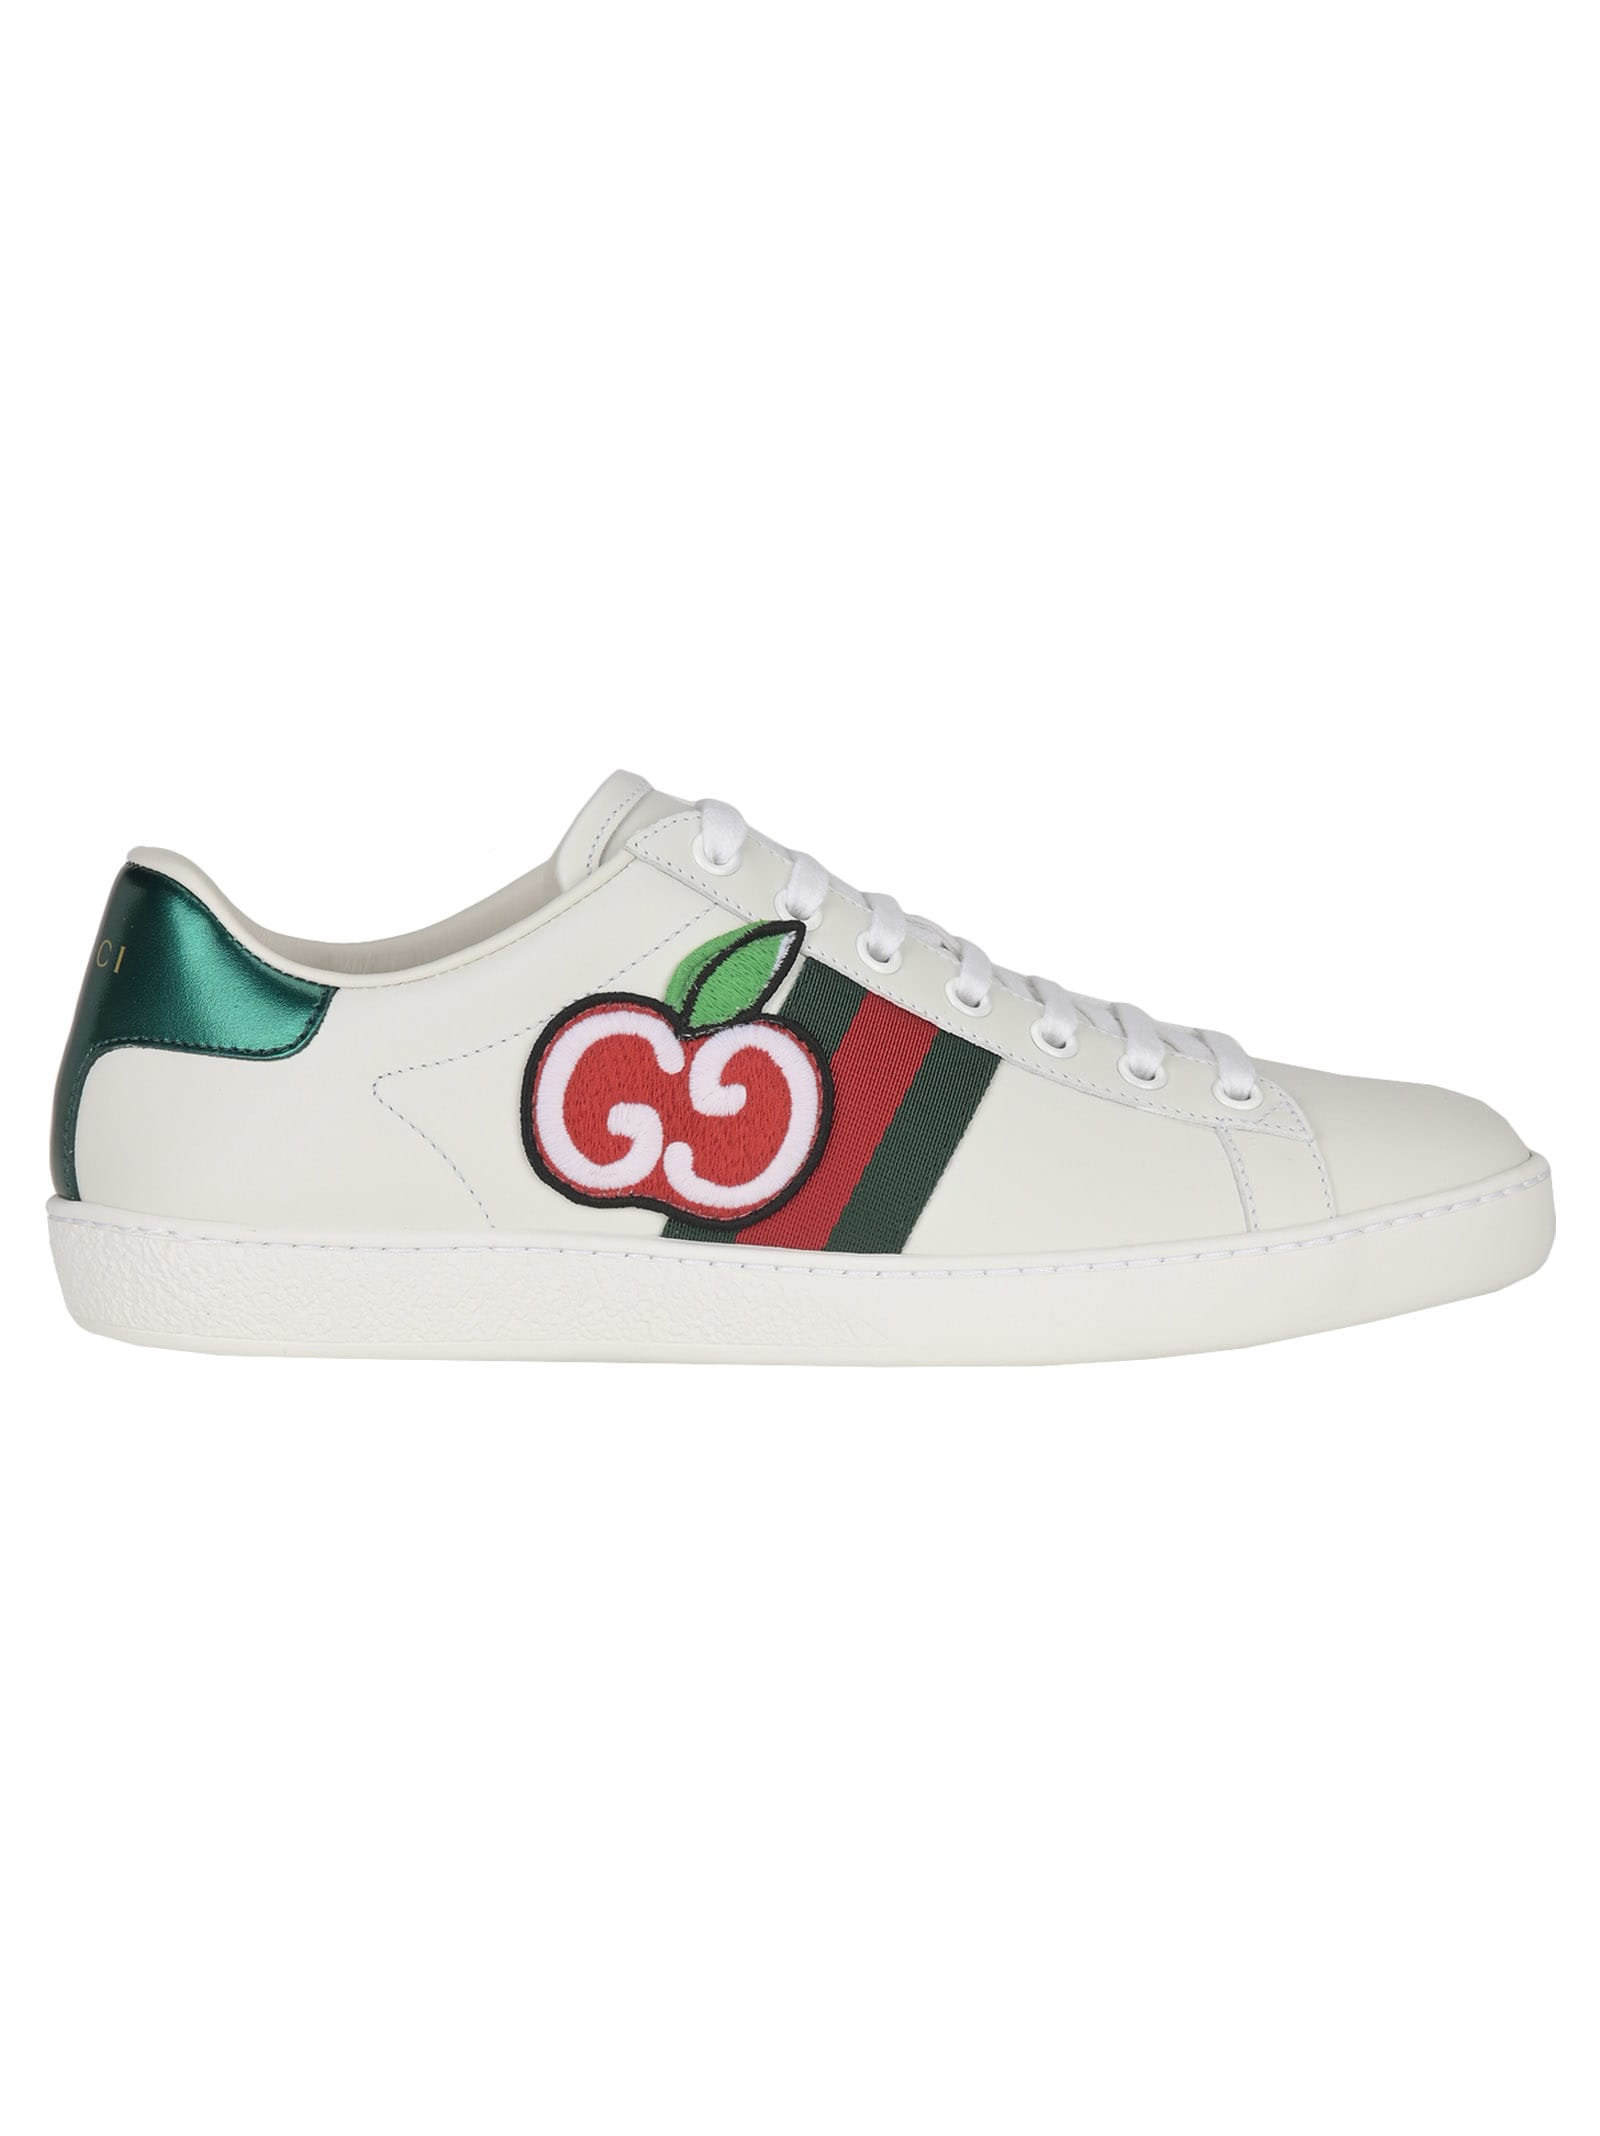 Gucci Ace Sneaker With Gg Apple